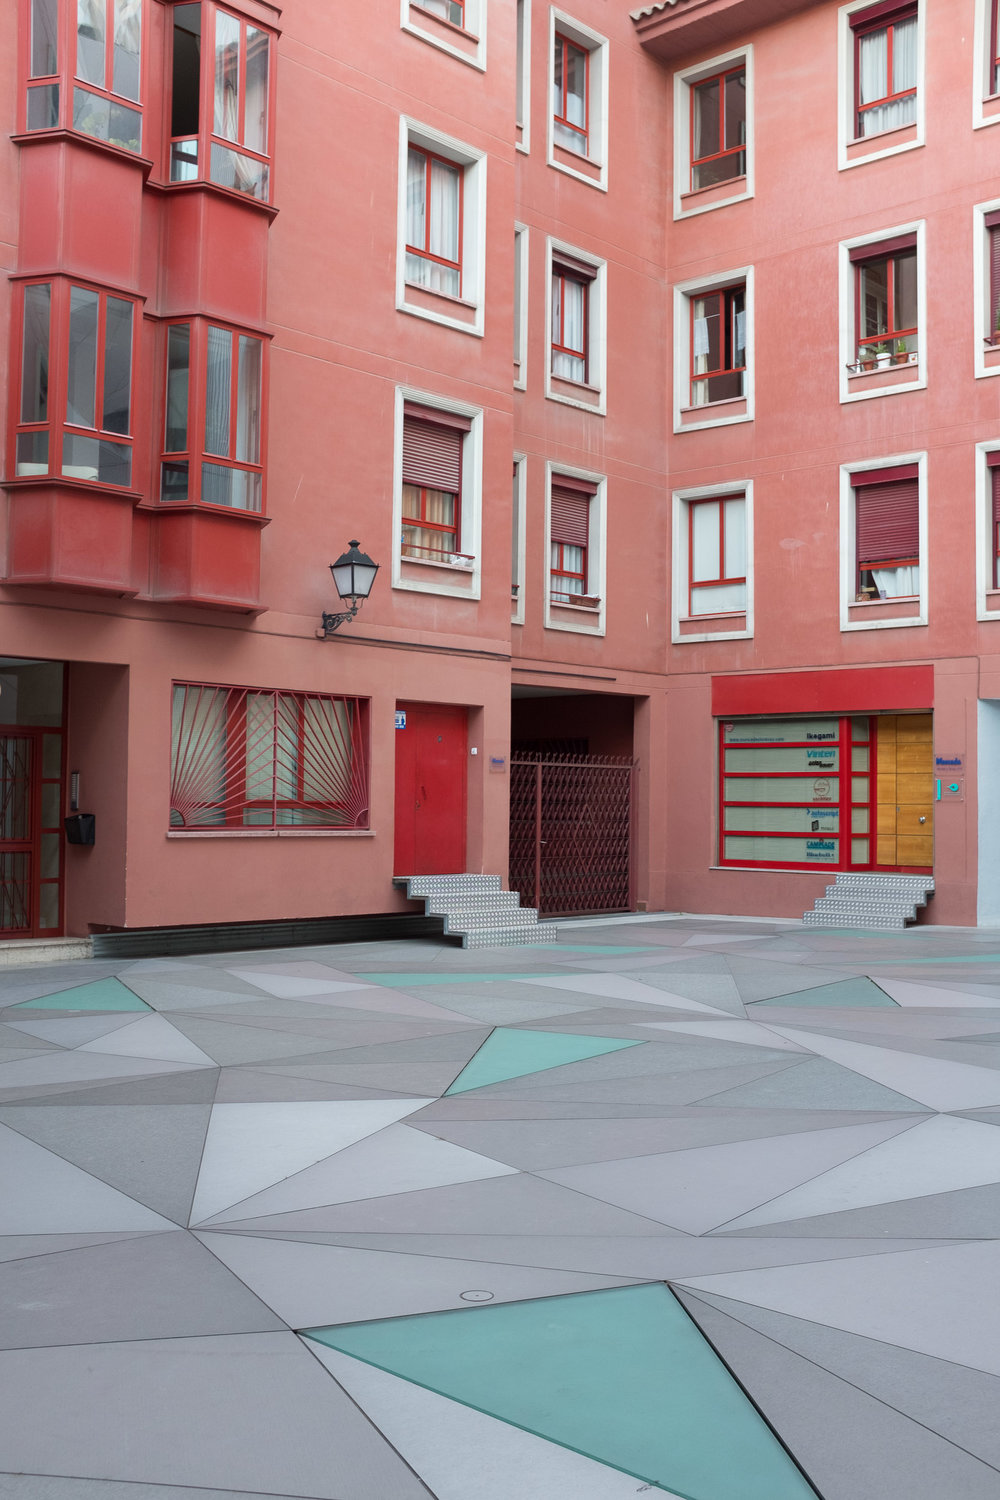 Pink builing with geometric courtyard in Madrid, Spain